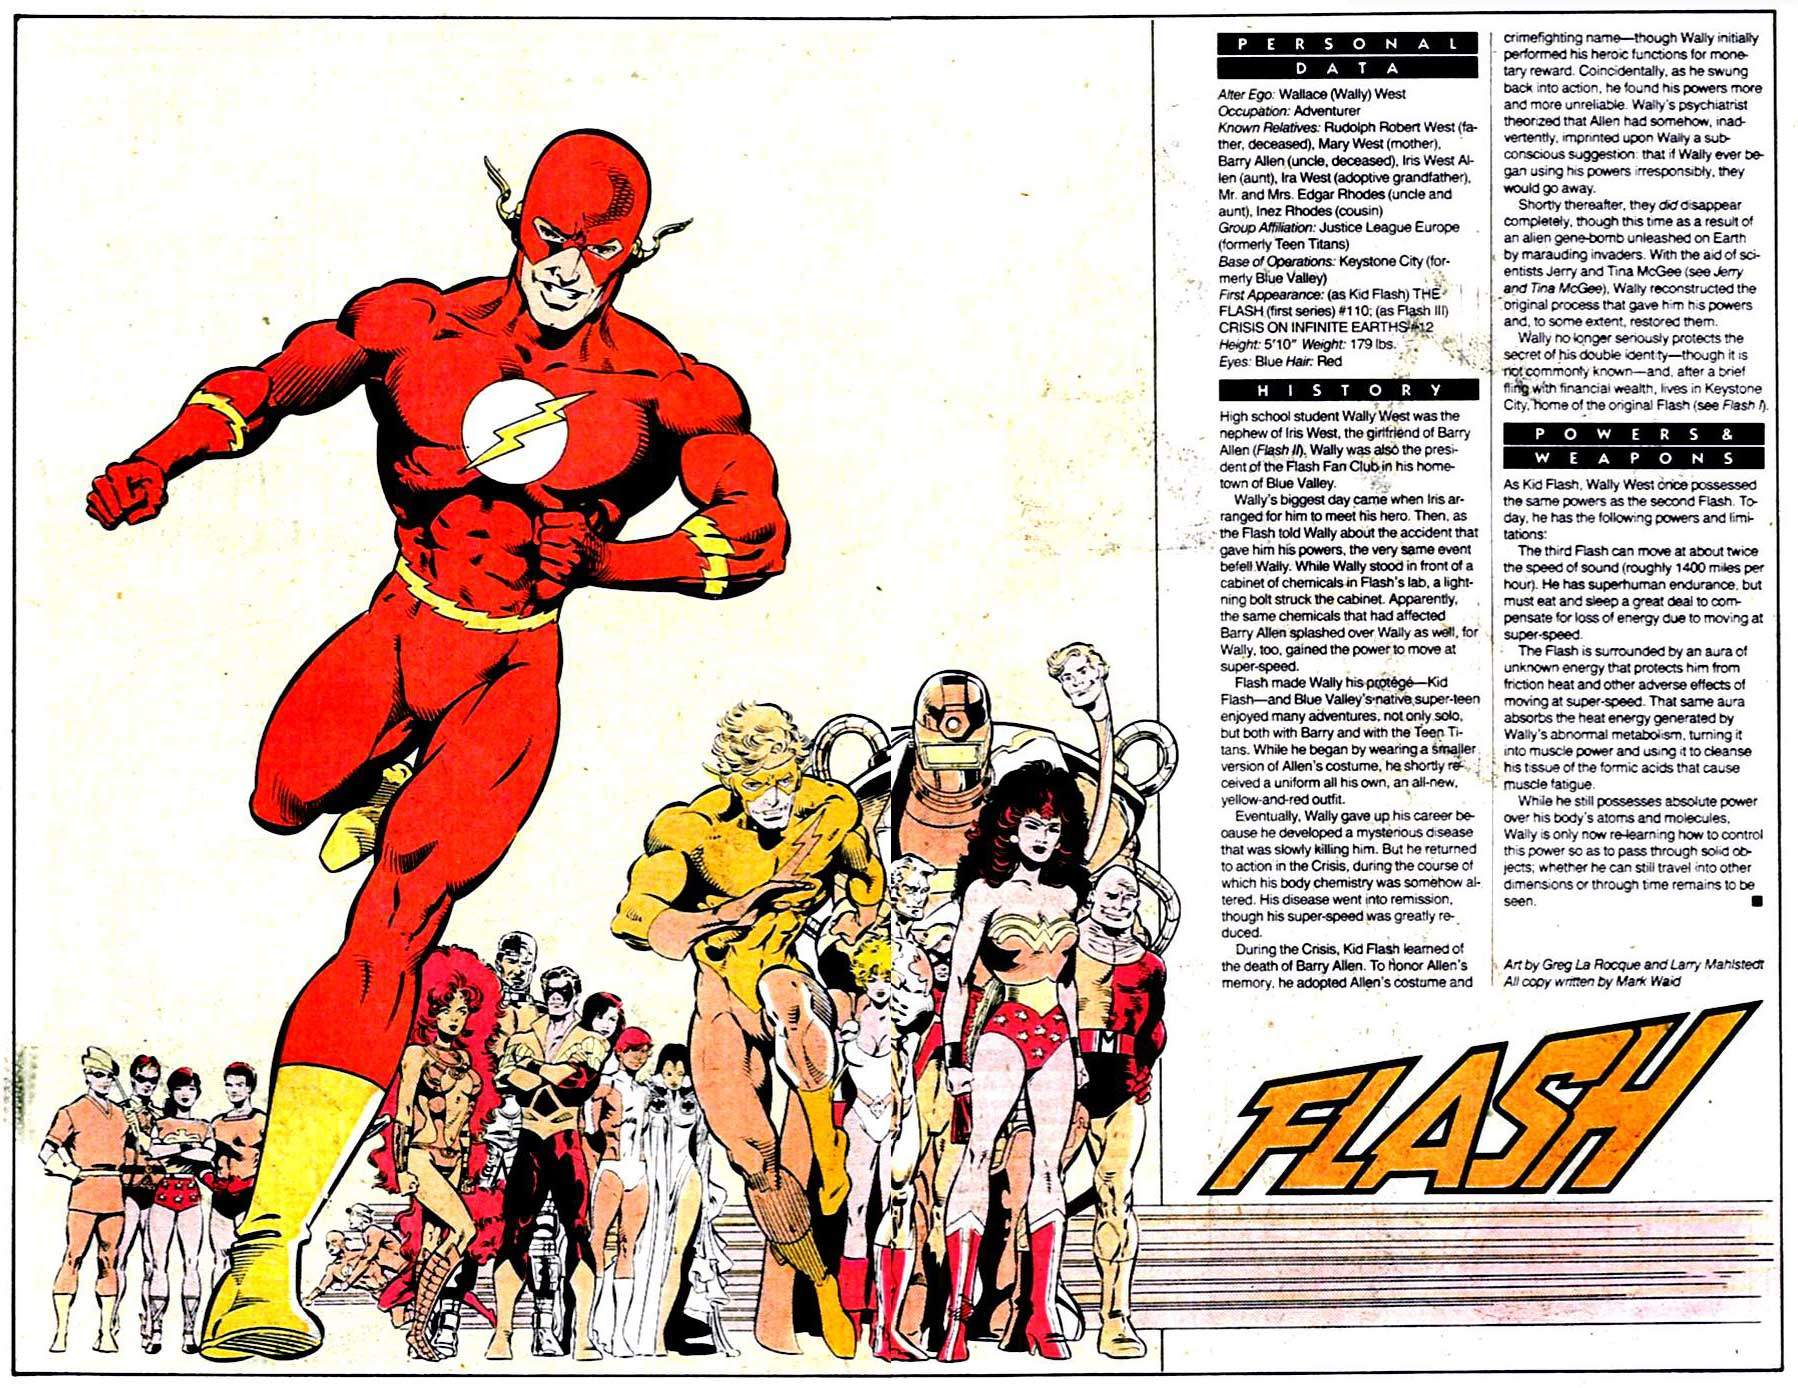 Who's Who 1989 Annual The Flash (Wally West) by Greg LaRocque and Larry Mahlstedt; All copy written by Mark Waid